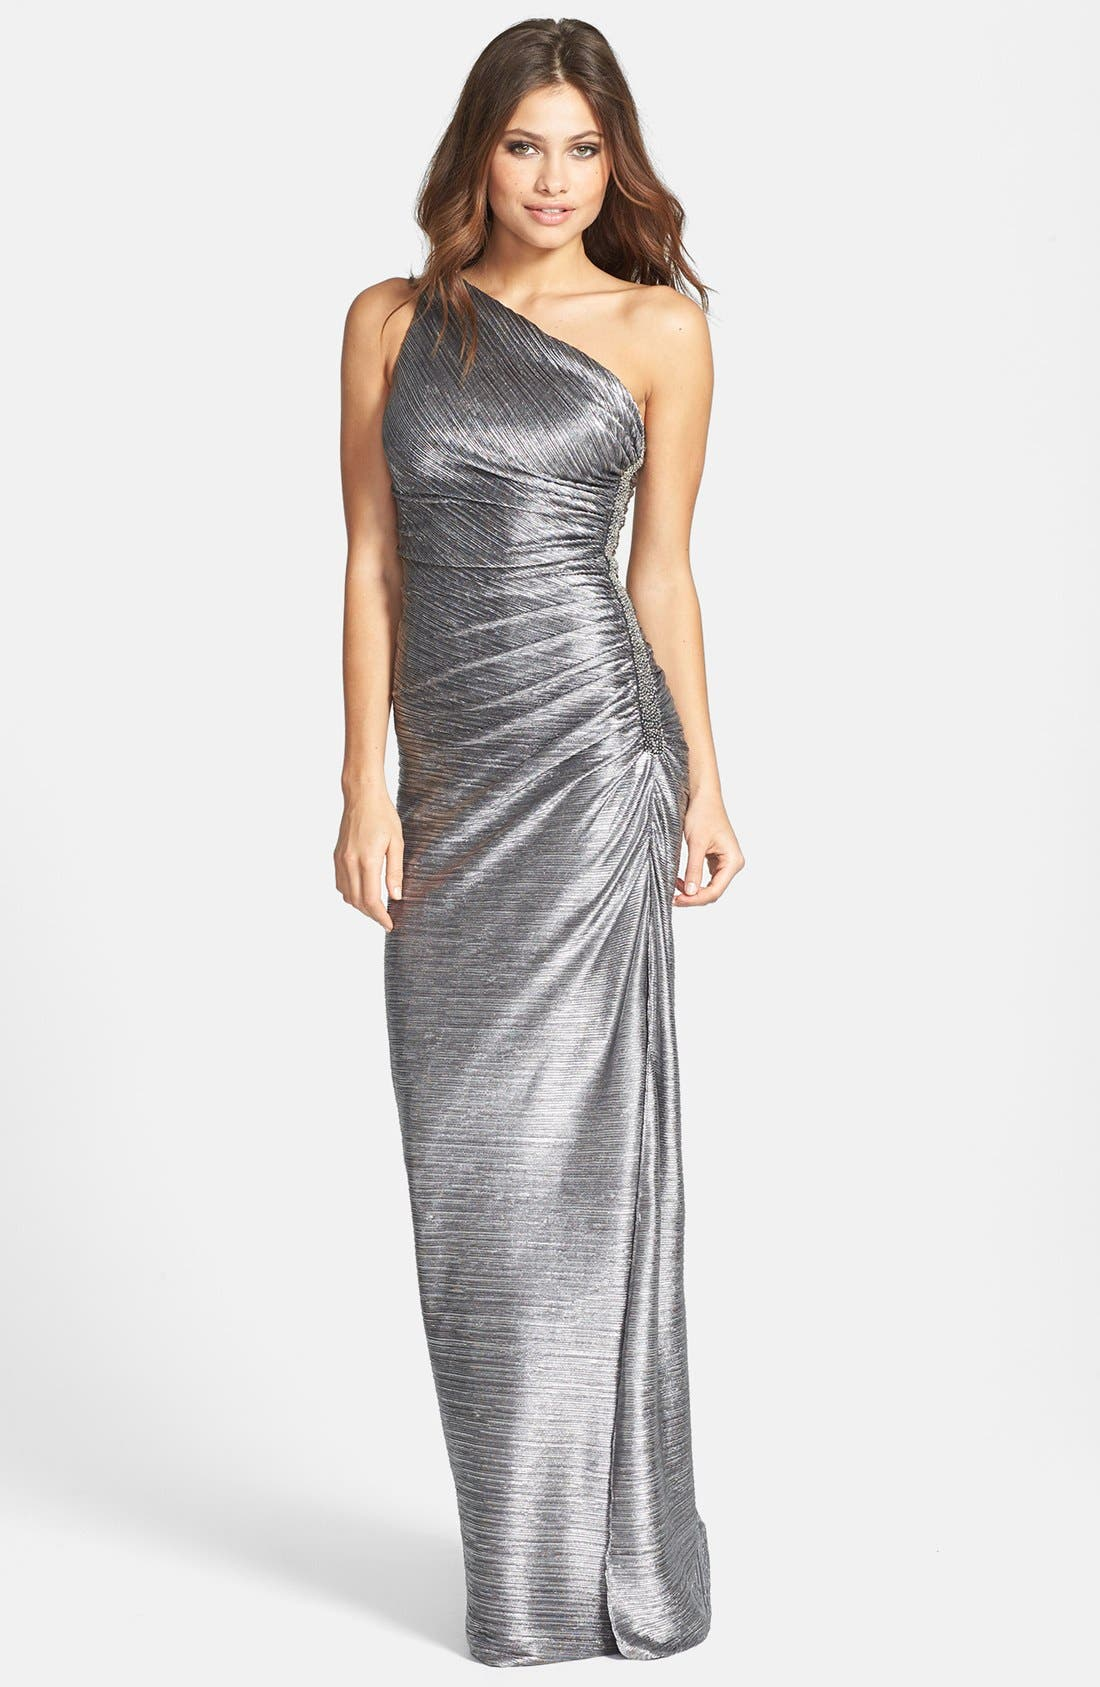 Main Image - Laundry by Shelli Segal Embellished Metallic Foil One-Shoulder Gown